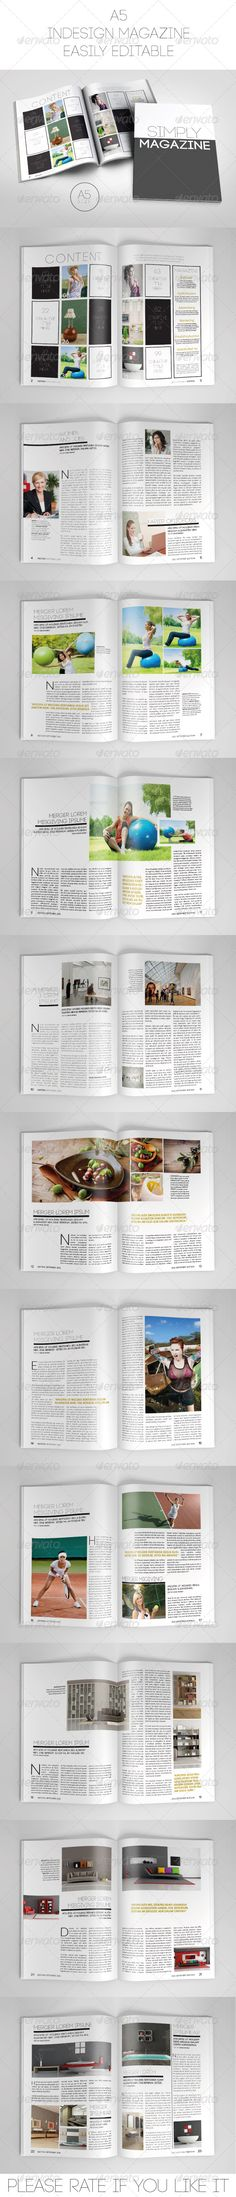 A5 Magazine Template (Portrait) by WattCore A5 Magazine Template (Portrait) This is a professional and clean InDesign magazine template that can be used for any type of indus